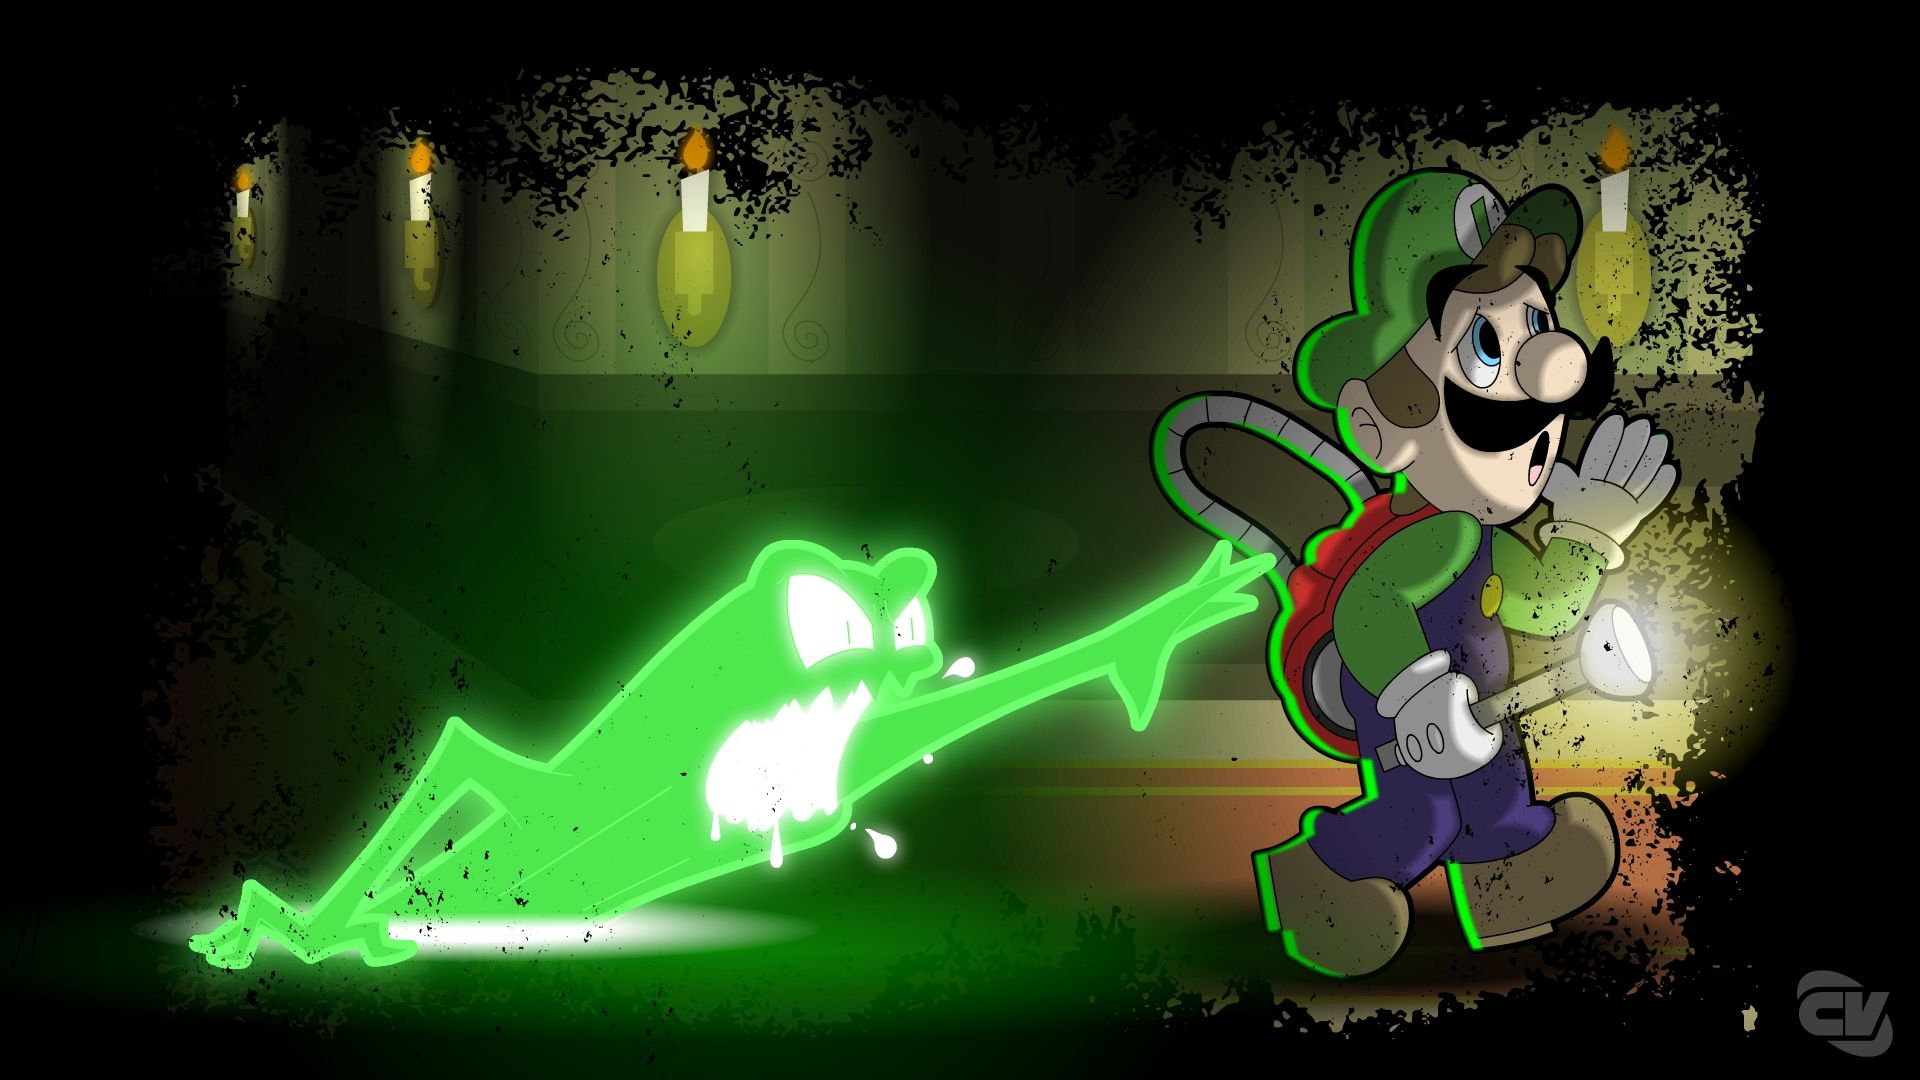 Luigi S Mansion Wallpapers Top Free Luigi S Mansion Backgrounds